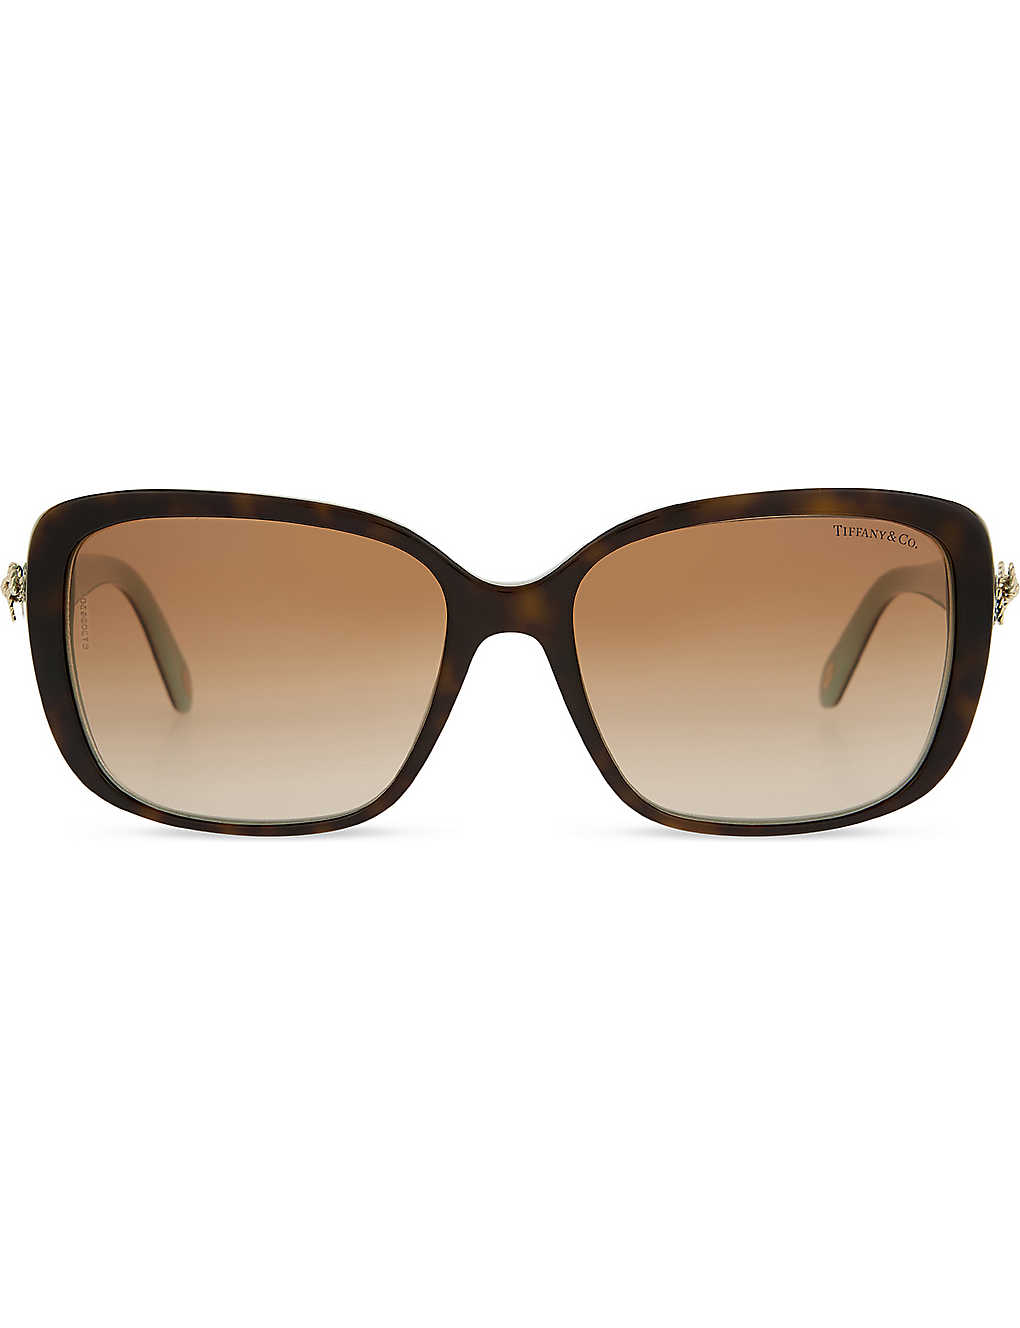 3770a3b788df TIFFANY & CO - TF4092 Twist square-frame sunglasses | Selfridges.com